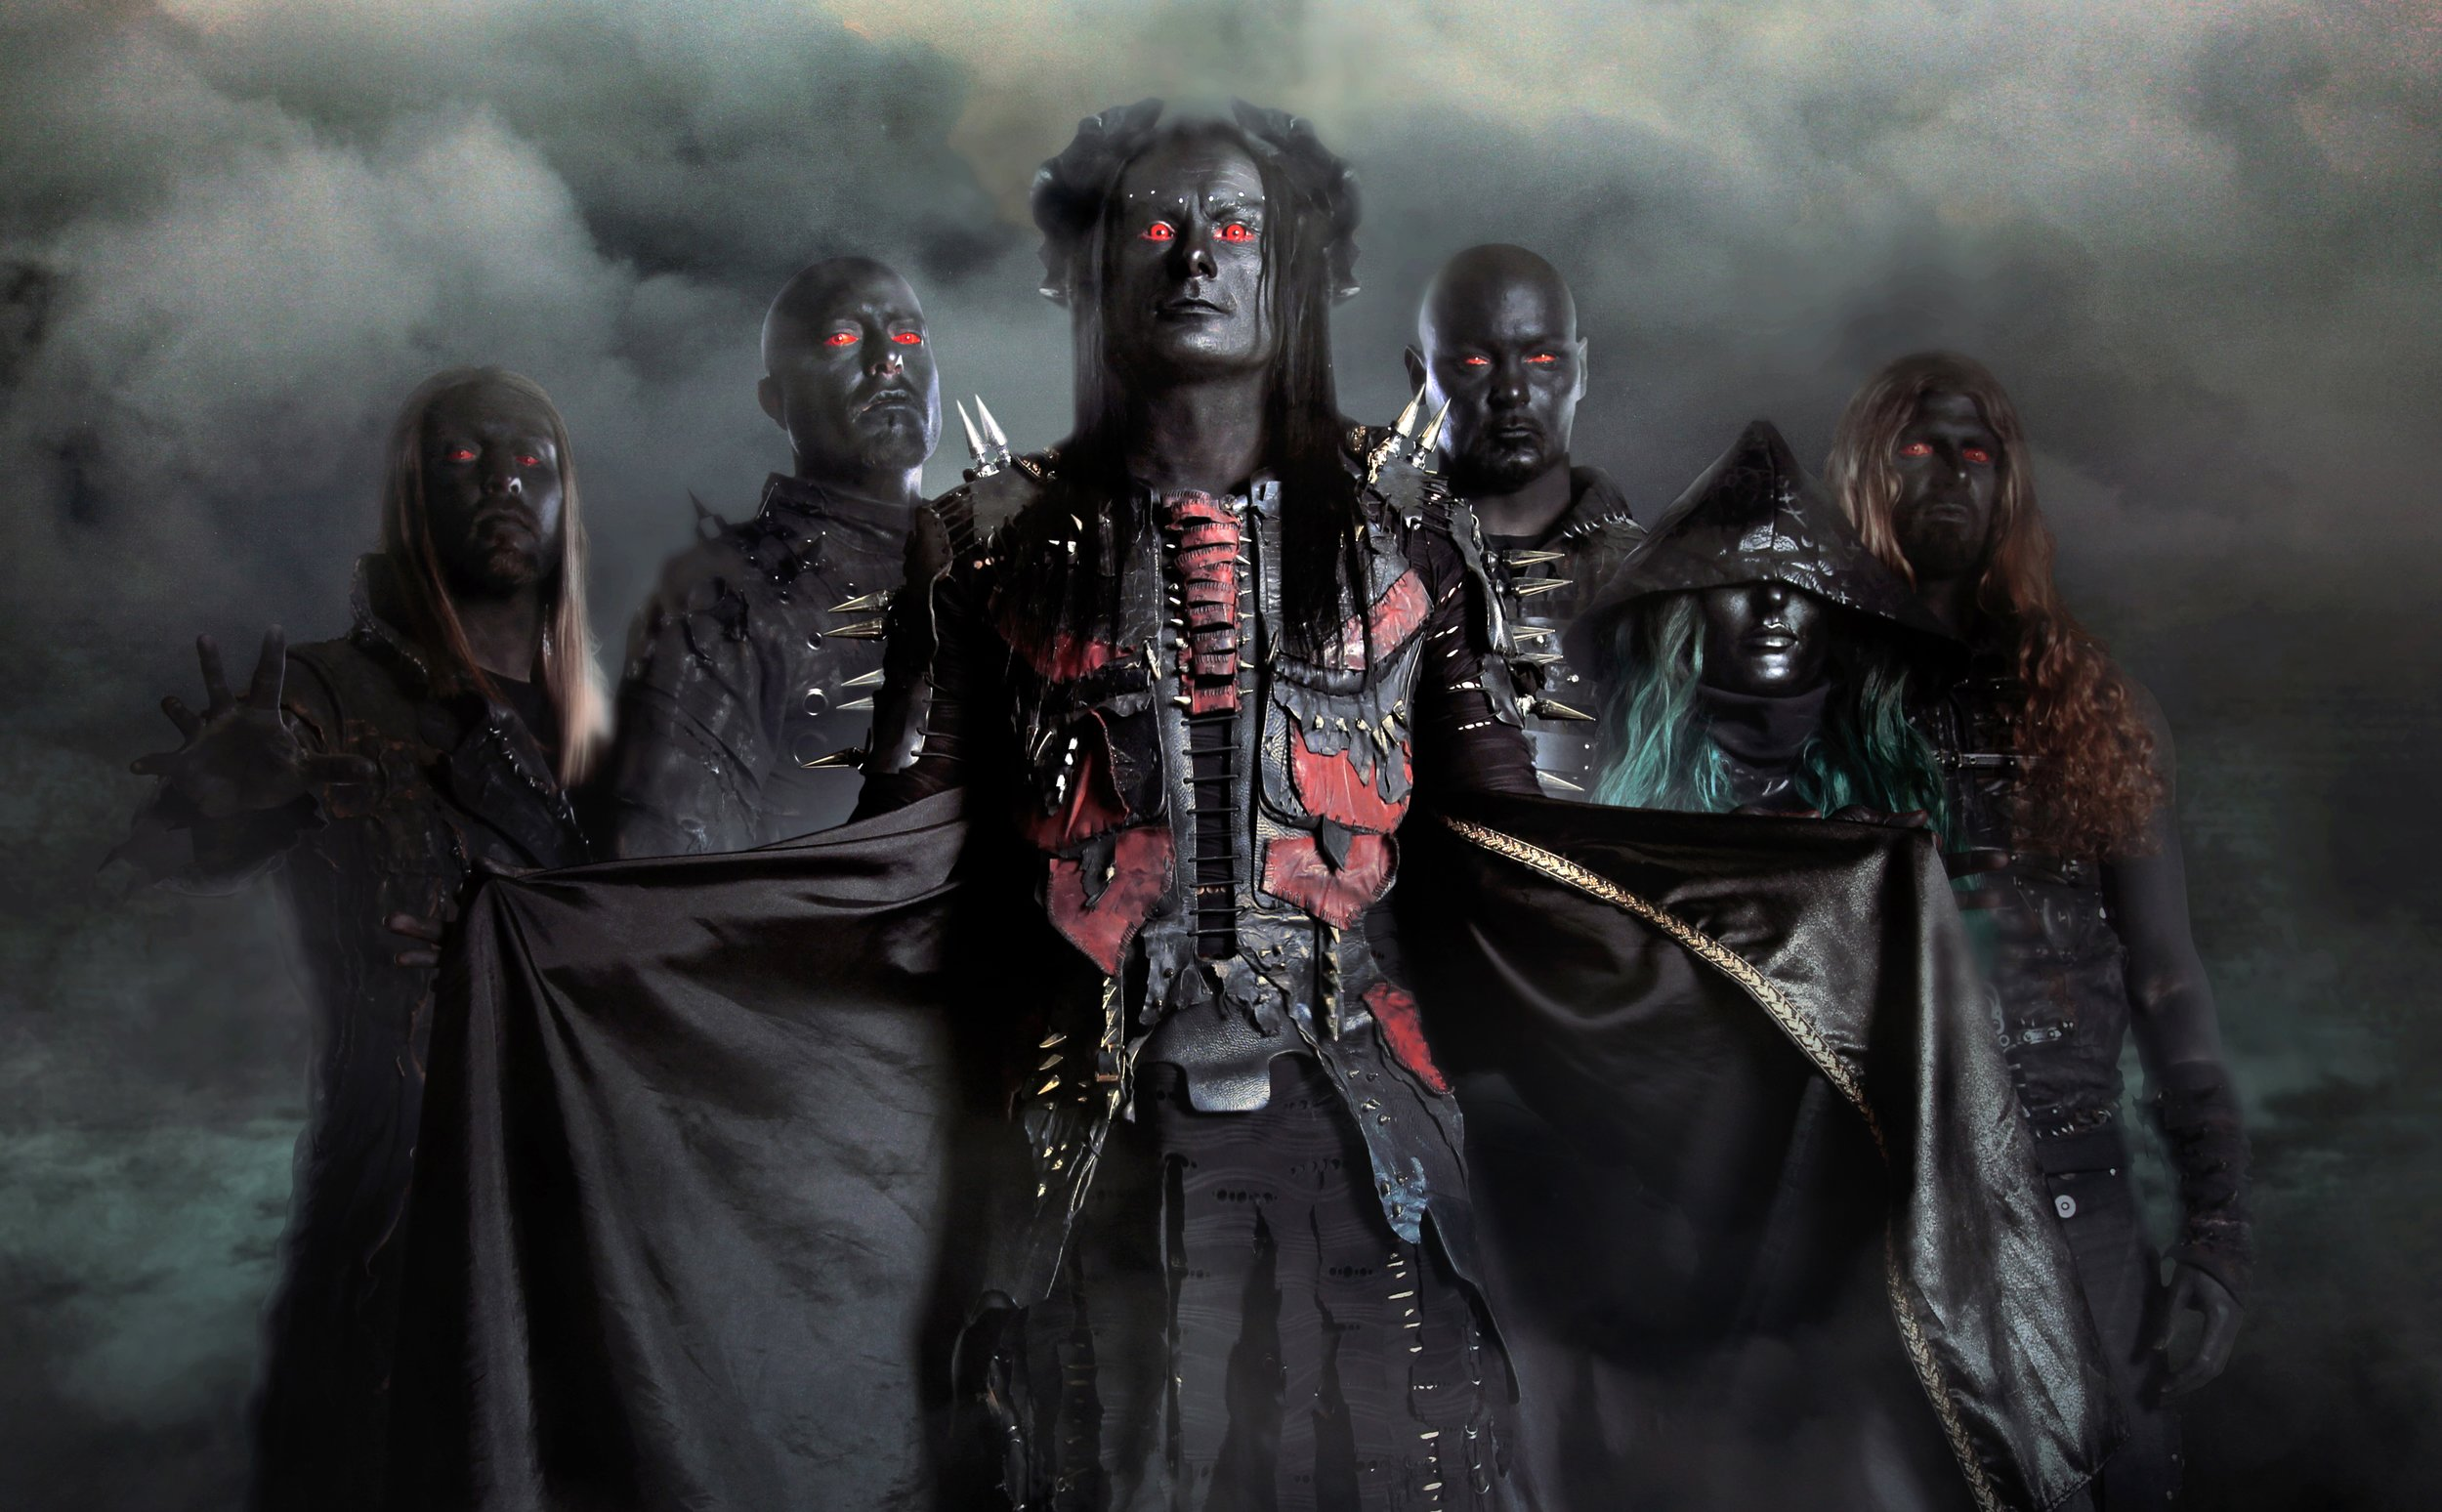 CRADLE OF FILTH announce Saturday night at The London Palladium - A